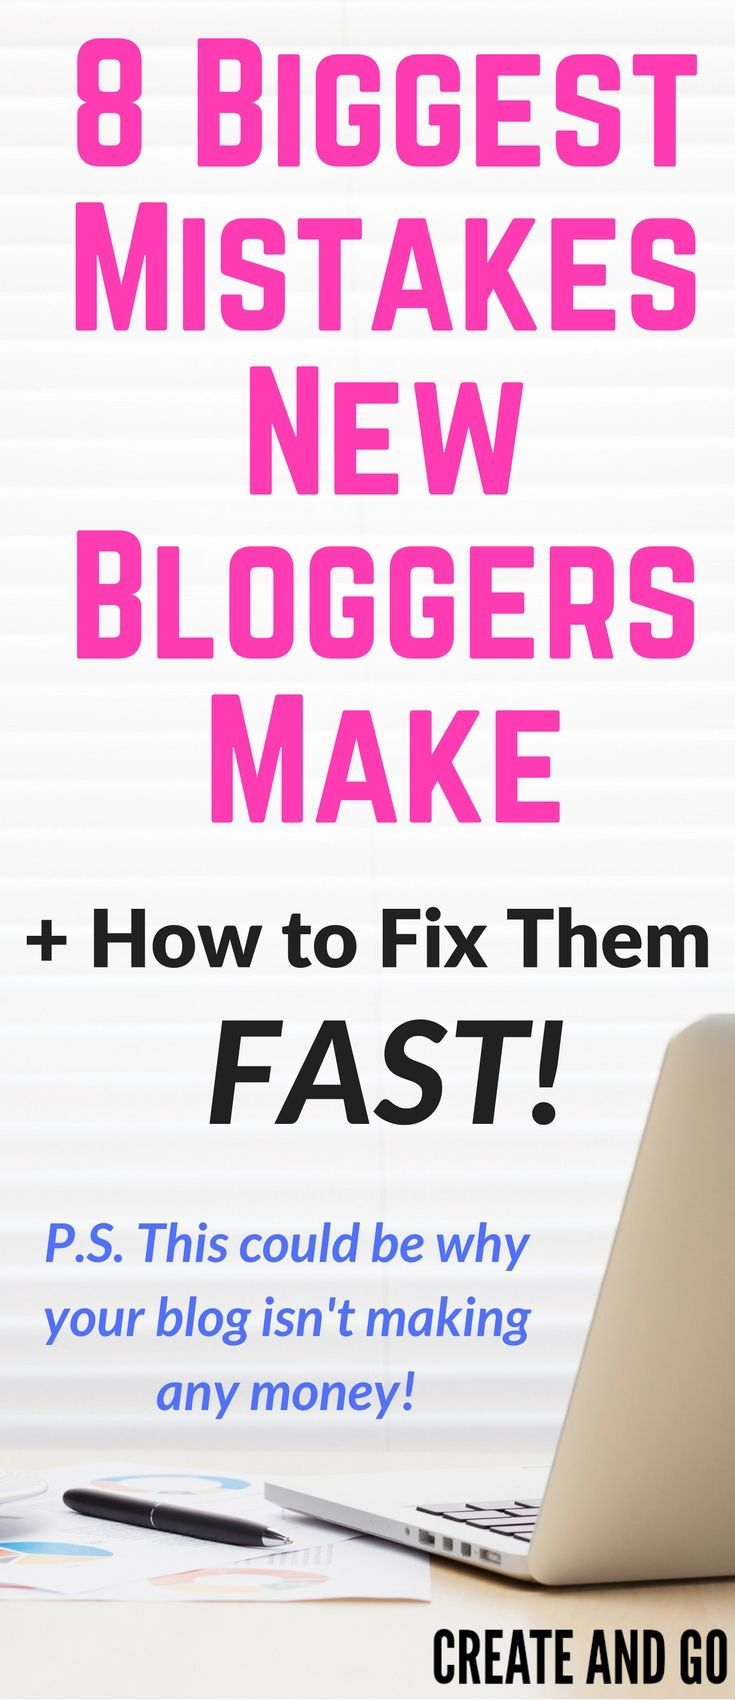 Don't make these huge blogging mistakes and keep yourself from making money online with your blog! http://createandgo.co/biggest-mistakes-new-bloggers-make/